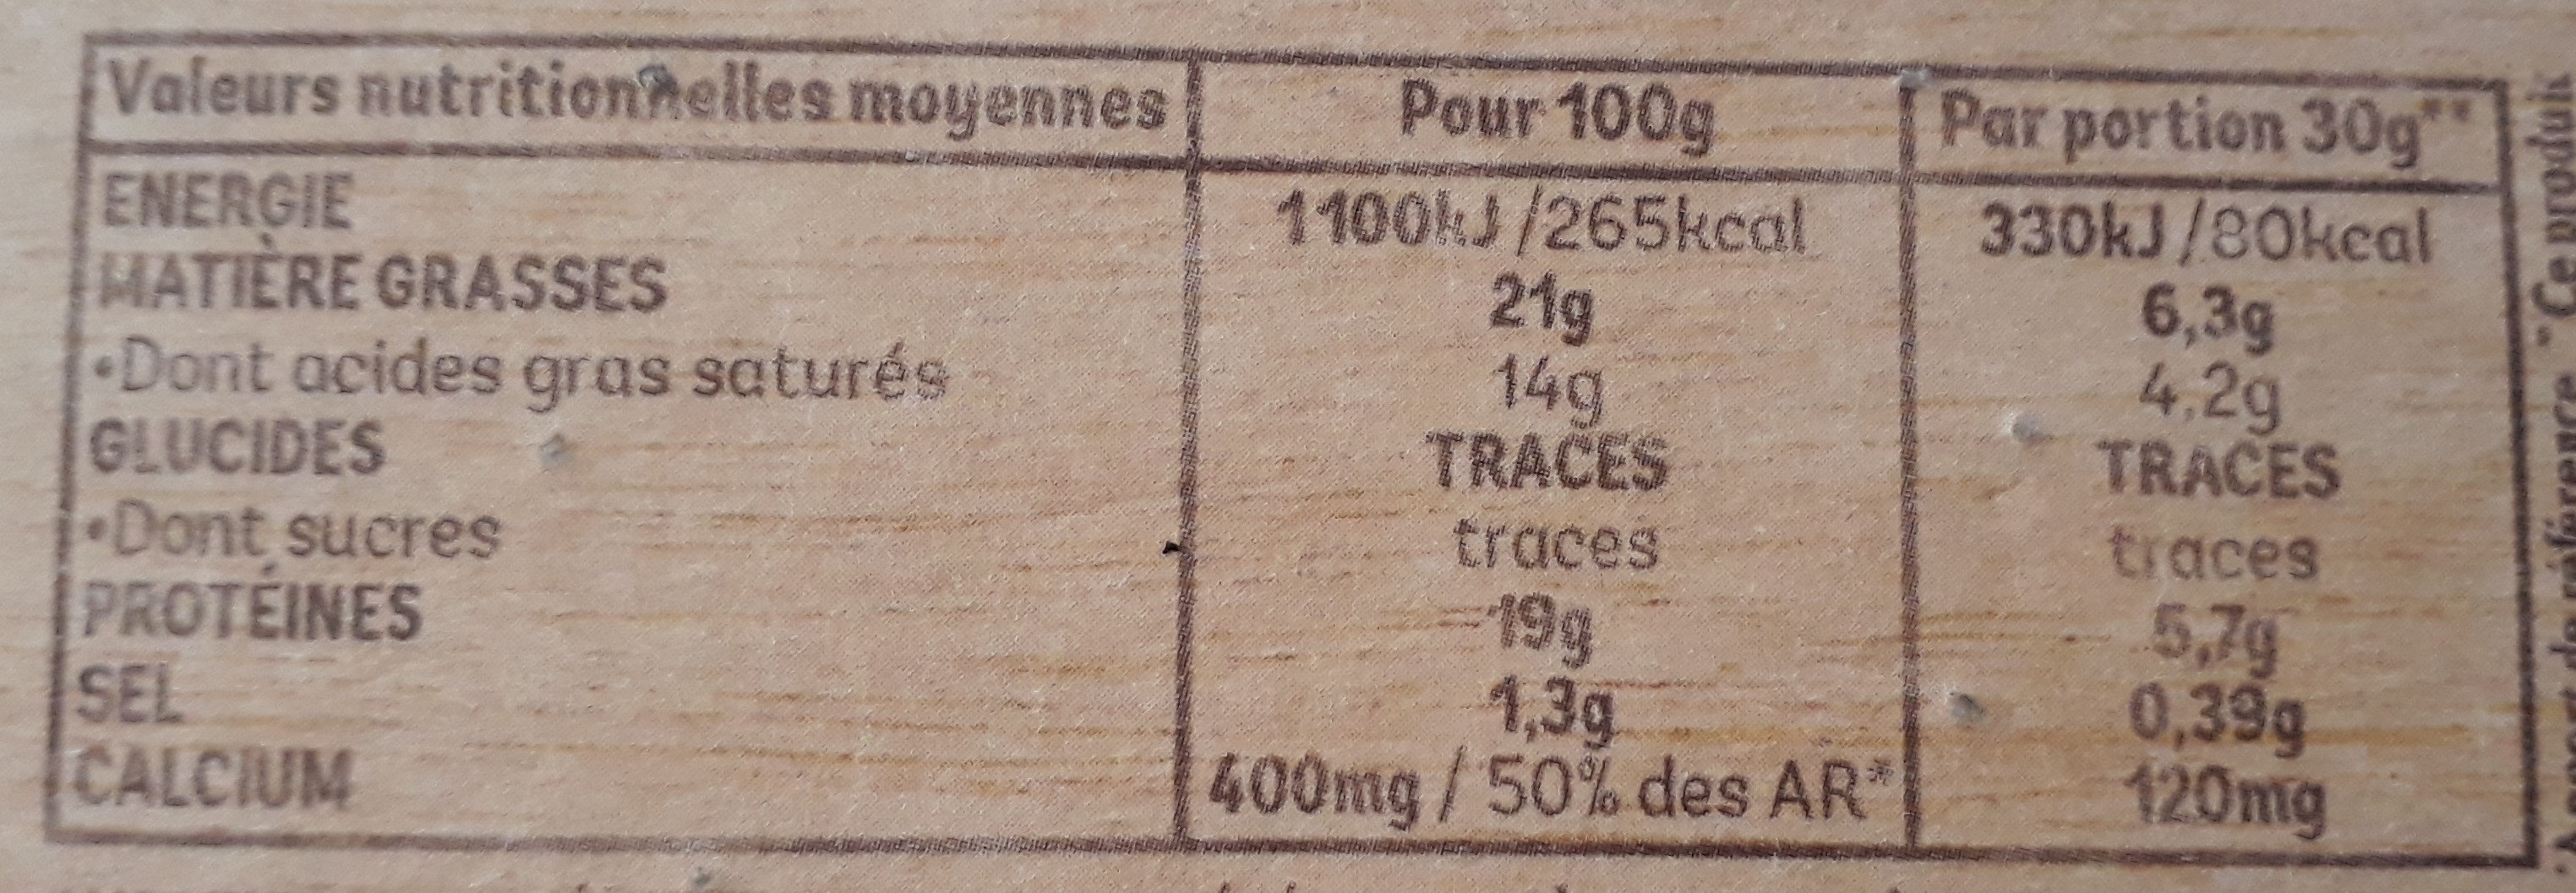 Camembert Auguste Lepetit & fils (21 % MG) - Nutrition facts - fr